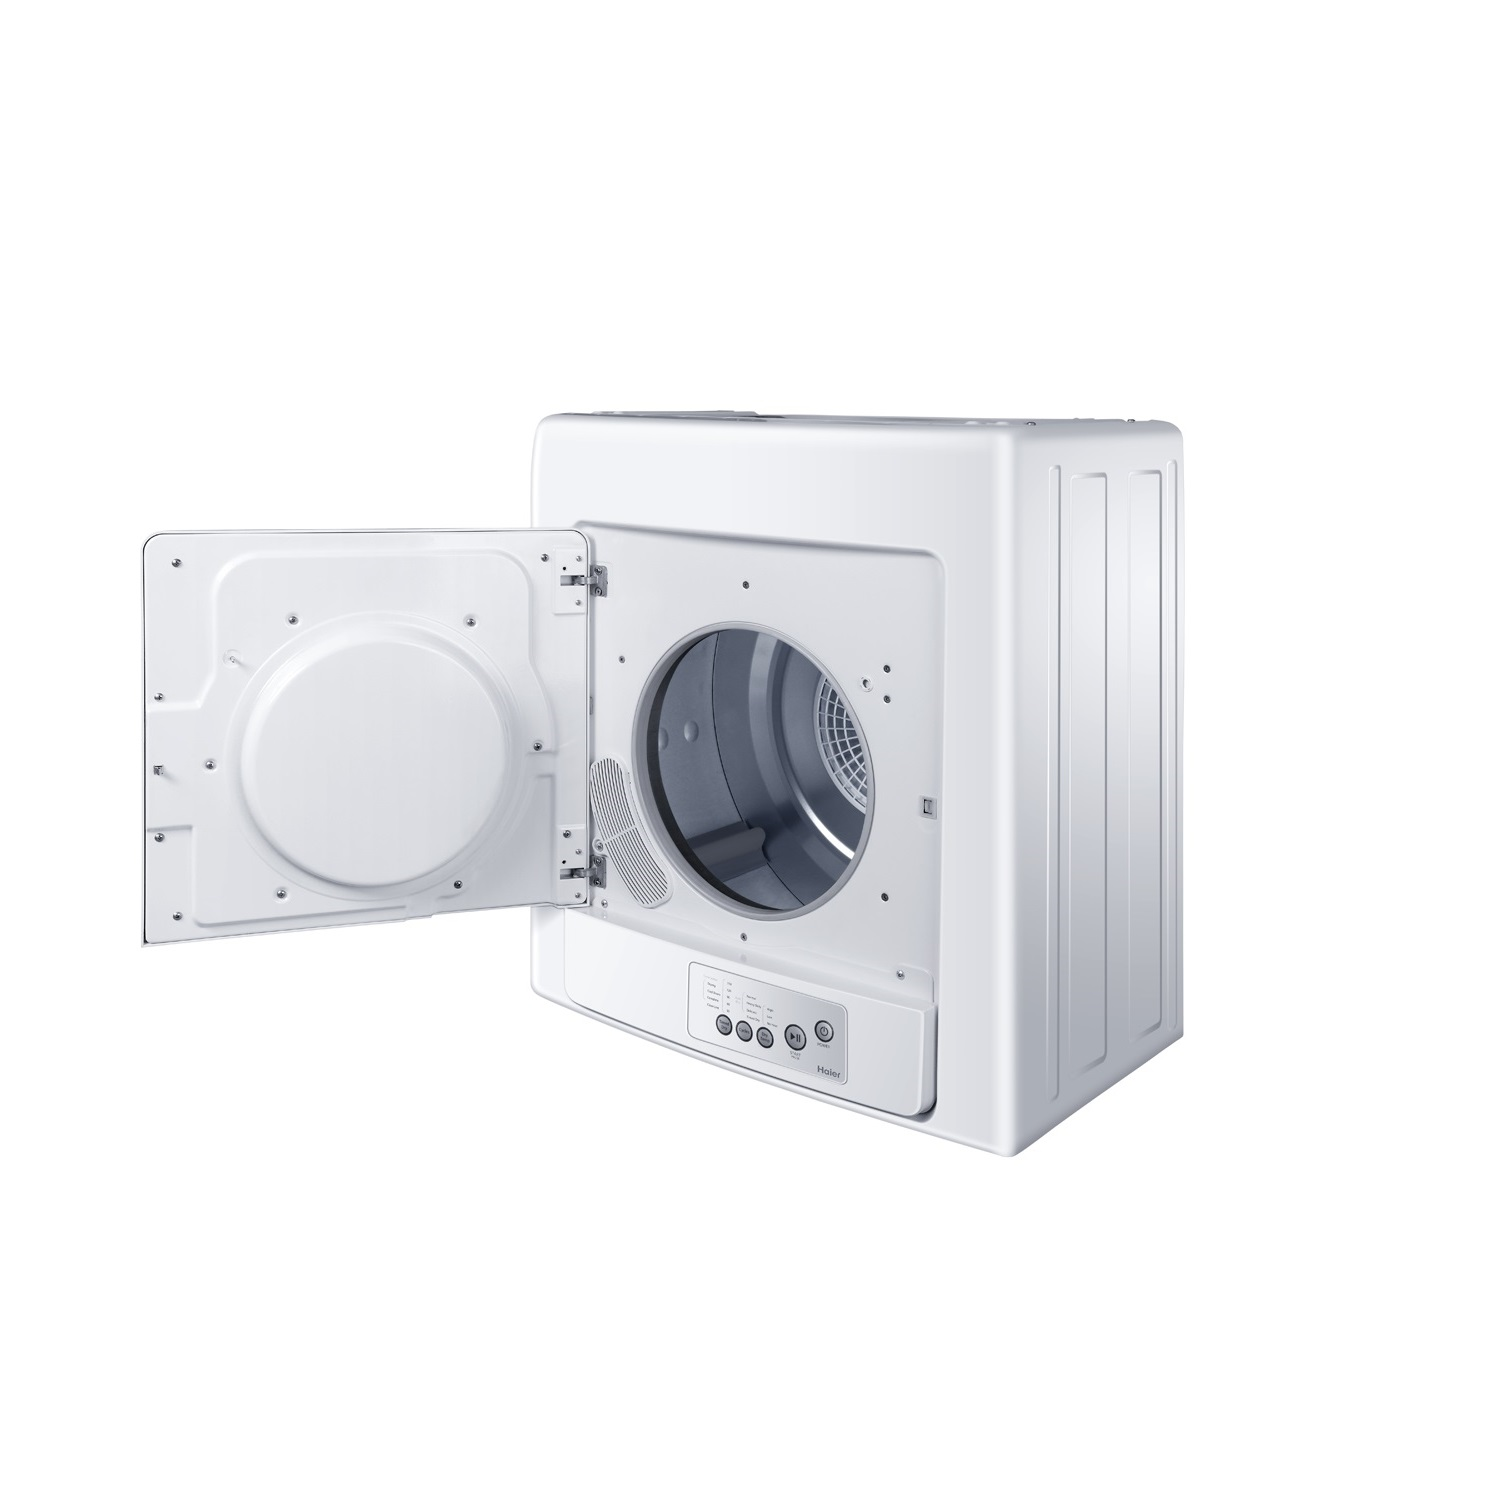 Haier gas dryer wiring diagram on haier 2 6 cu ft portable electric vented dryer, hlp141e Whirlpool Dryer Electrical Schematic Kenmore HE3 Gas Dryer Circuit Board